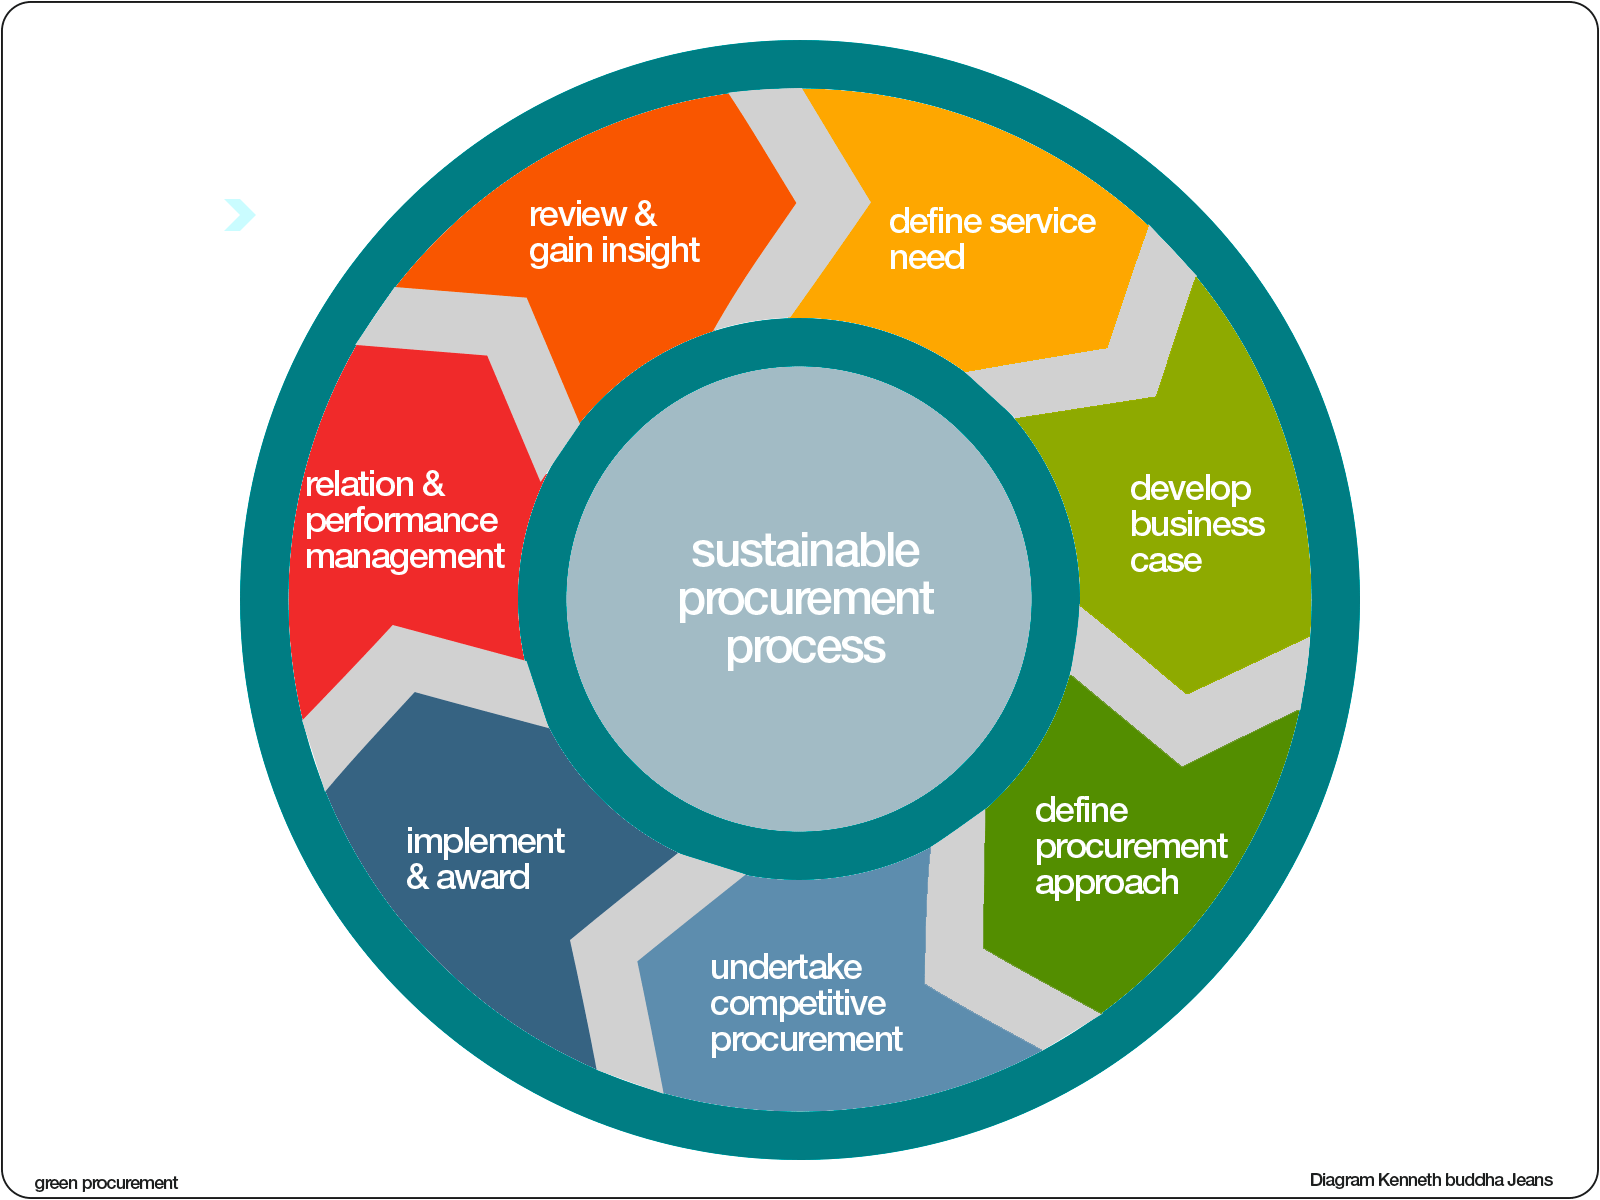 Green Sustainable Procurement Process in addition Six Sigma Dmaic Improve Phase furthermore Kanban as well Viber Icon likewise Procurement in circular economy. on flow chart diagram